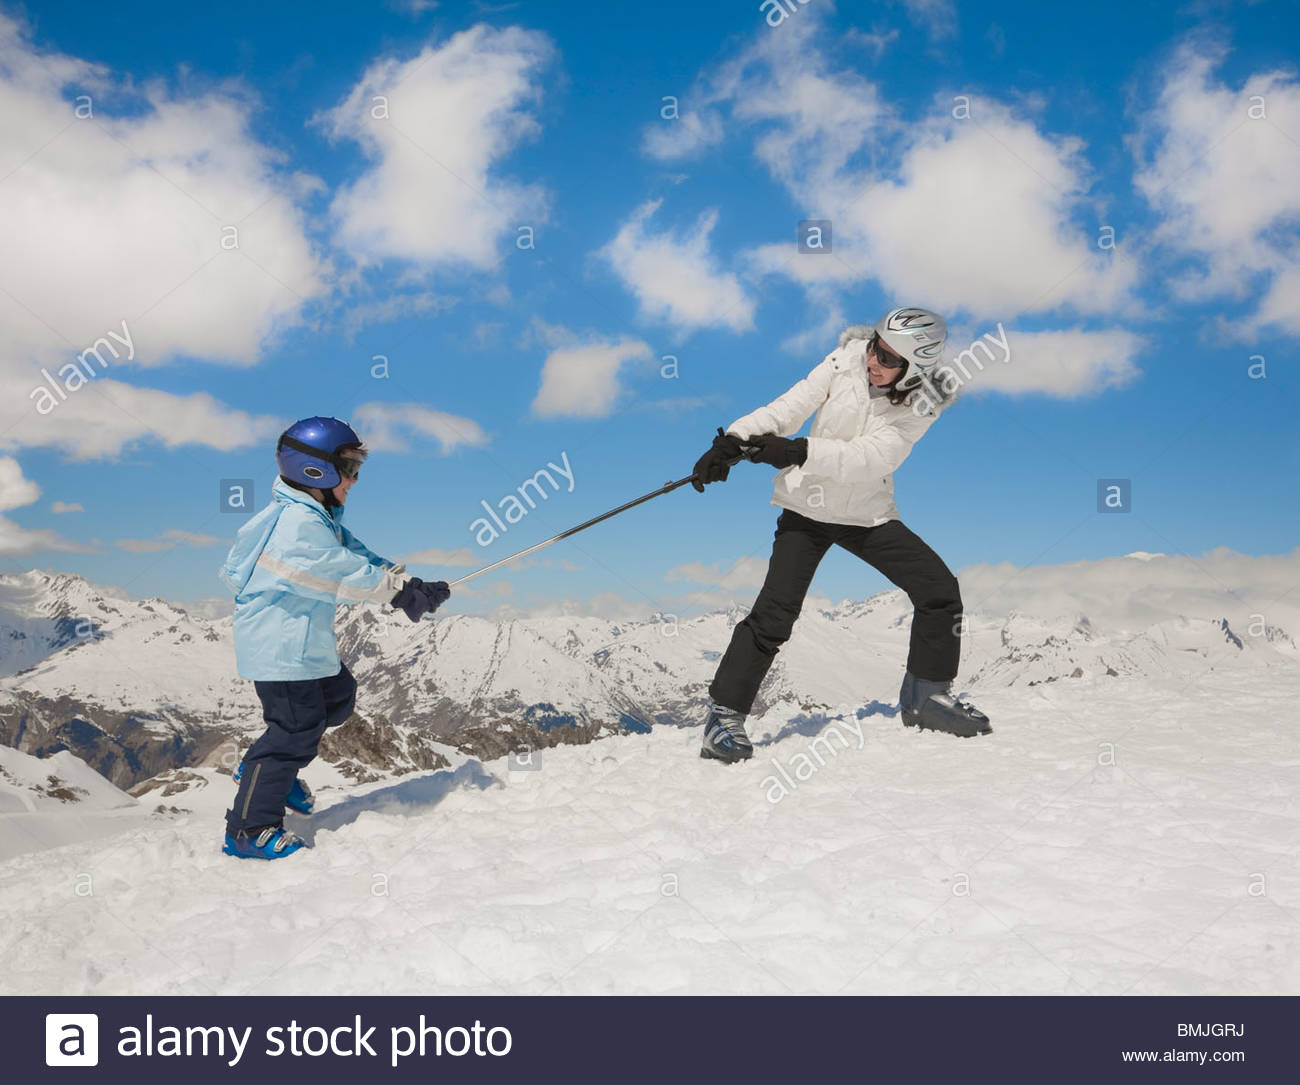 Woman pulling boy up snowy hill - Stock Image